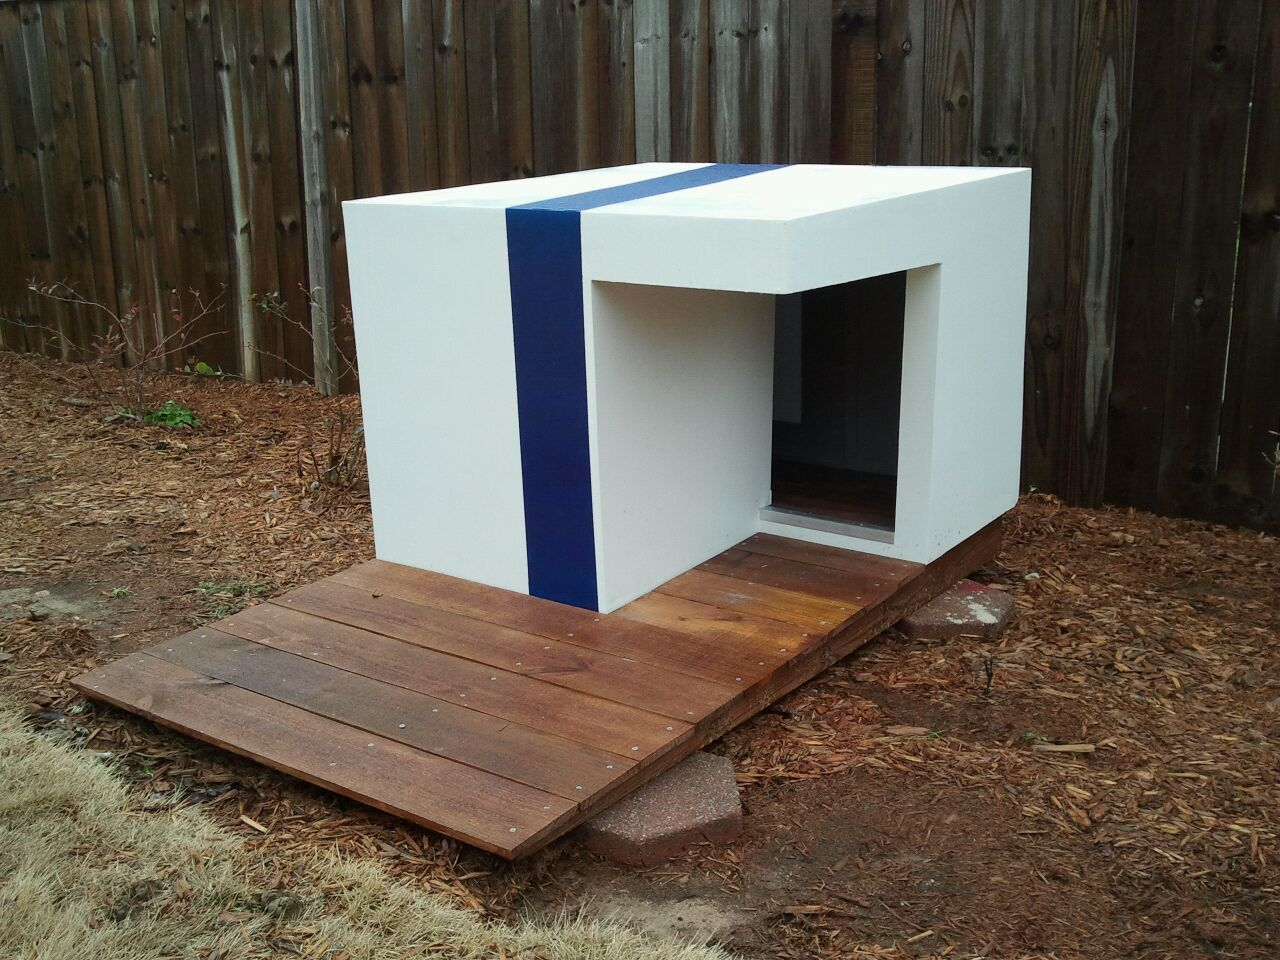 Houses for the modern dog modern dog house cube 650 00 via etsy